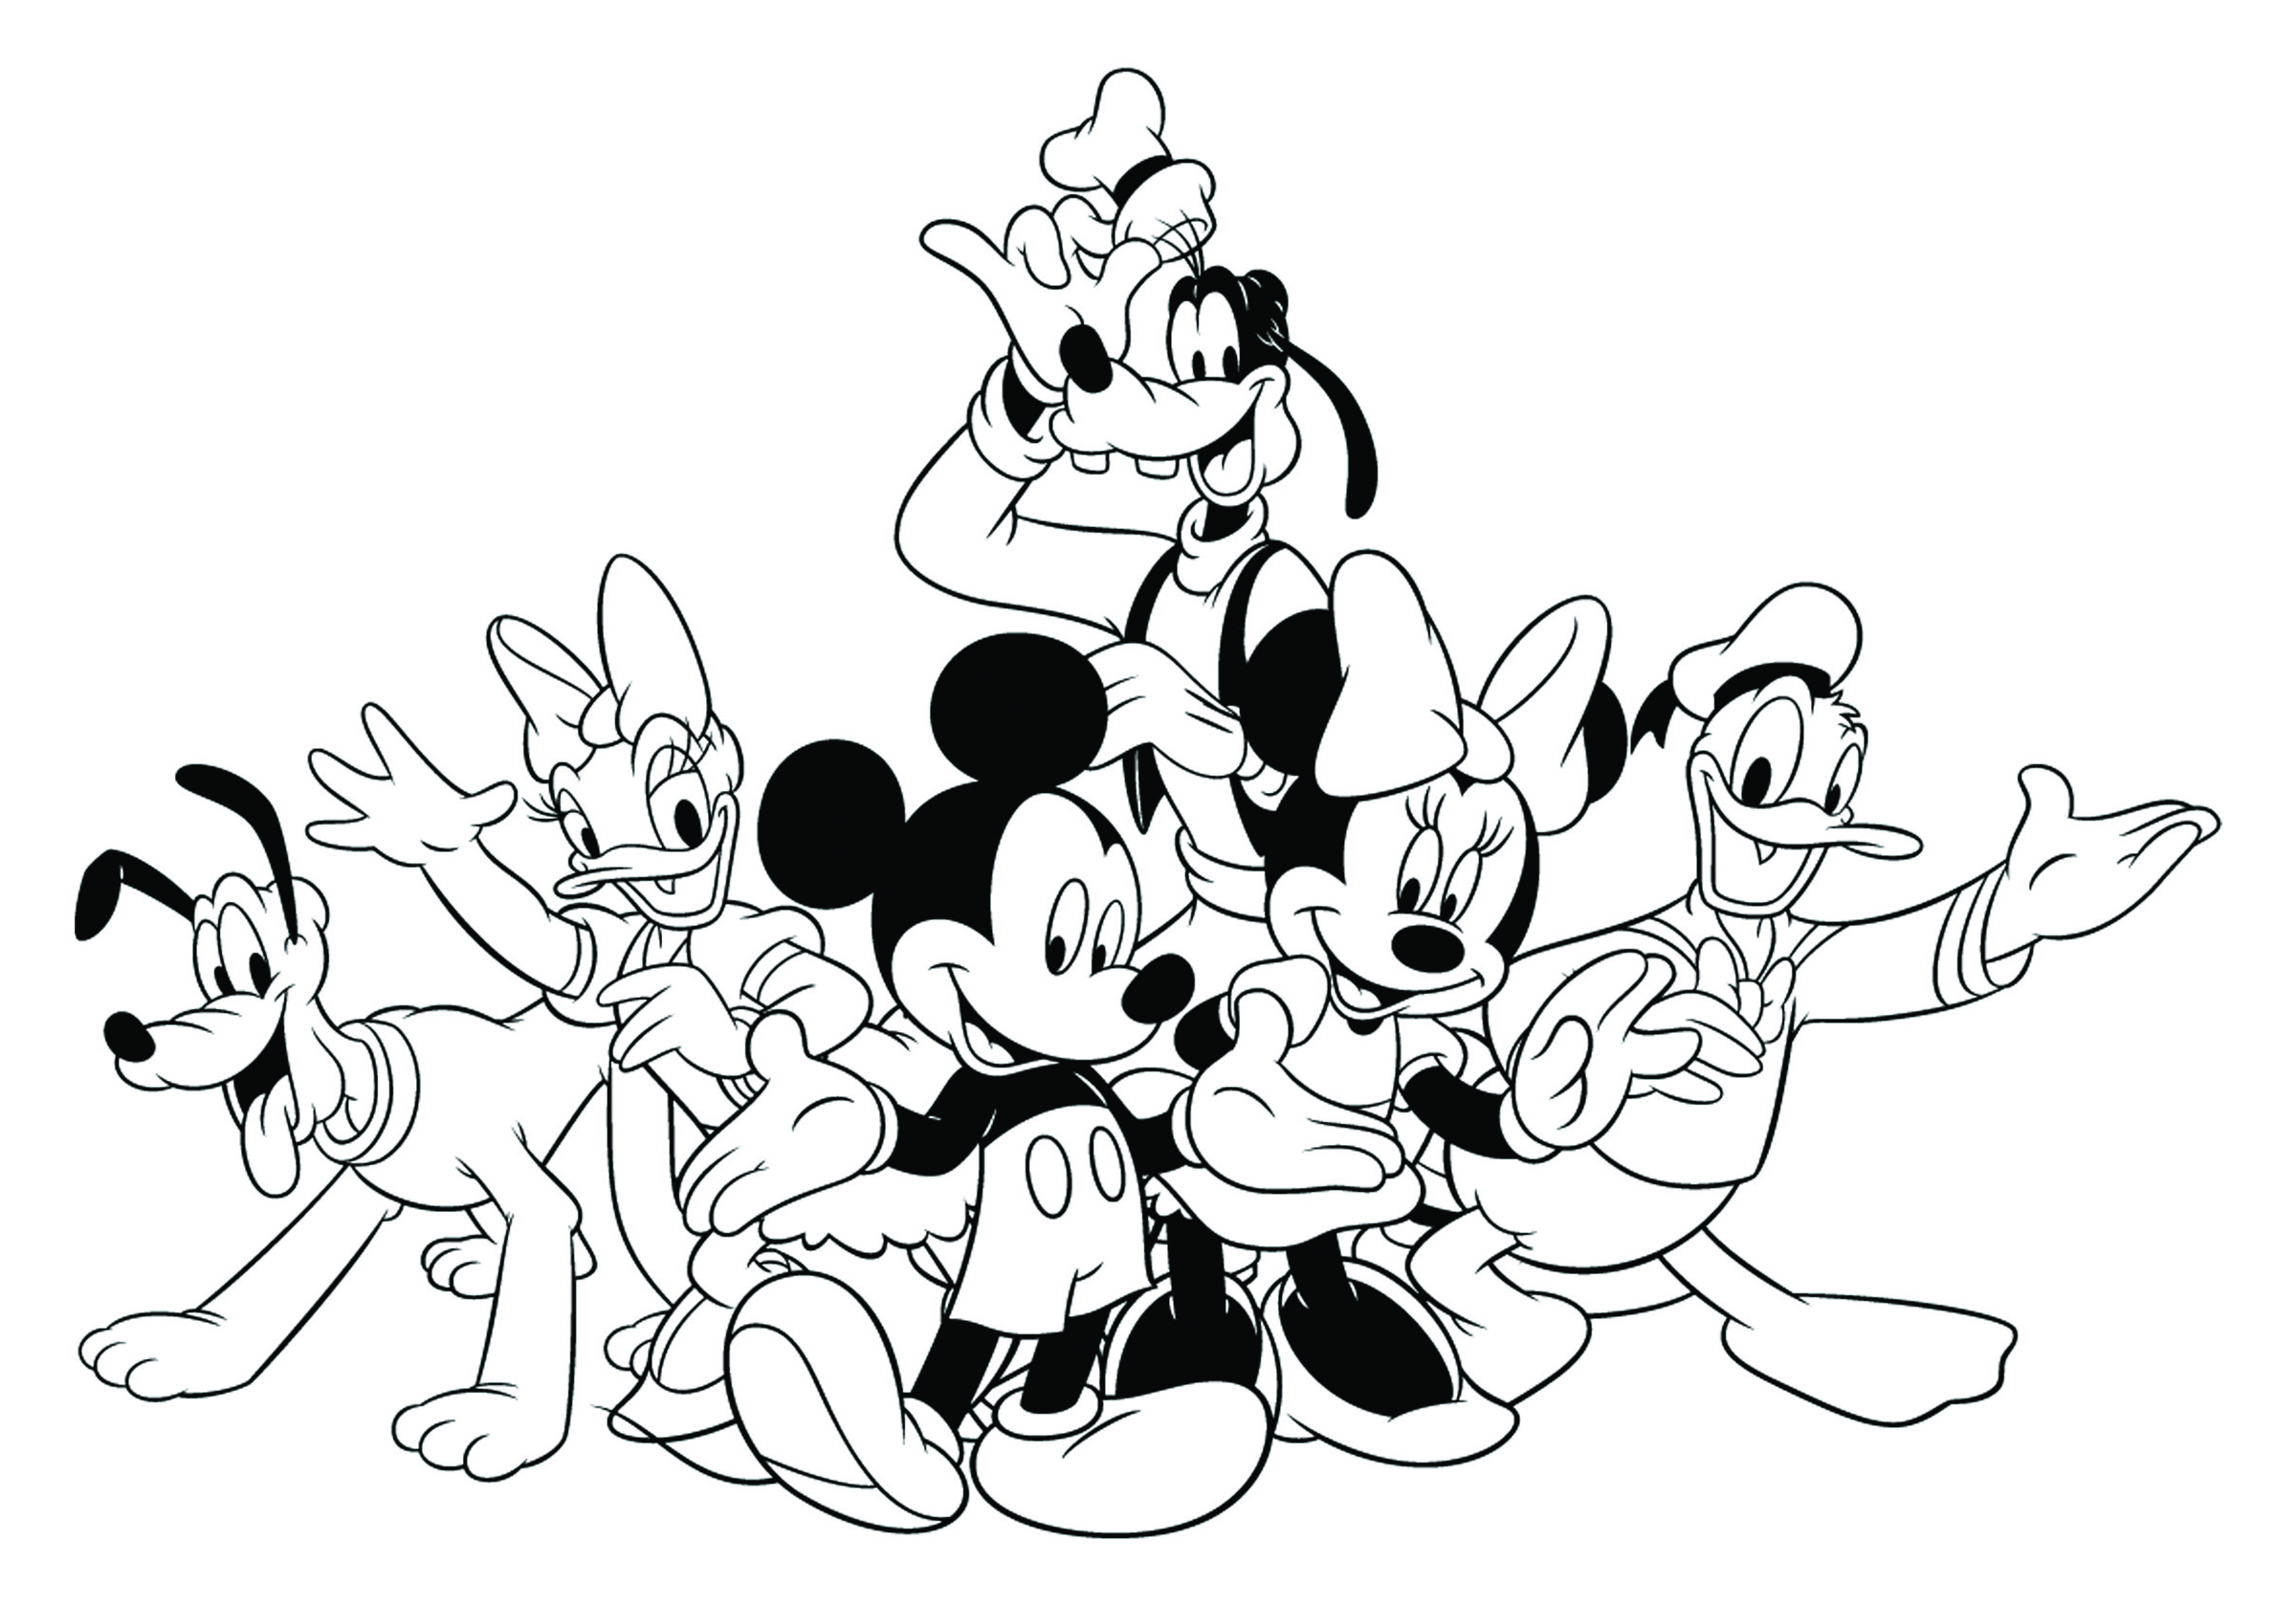 2400x1680 Disney Mickeys Typing Adventure Coloring Page Disney Family Mickey